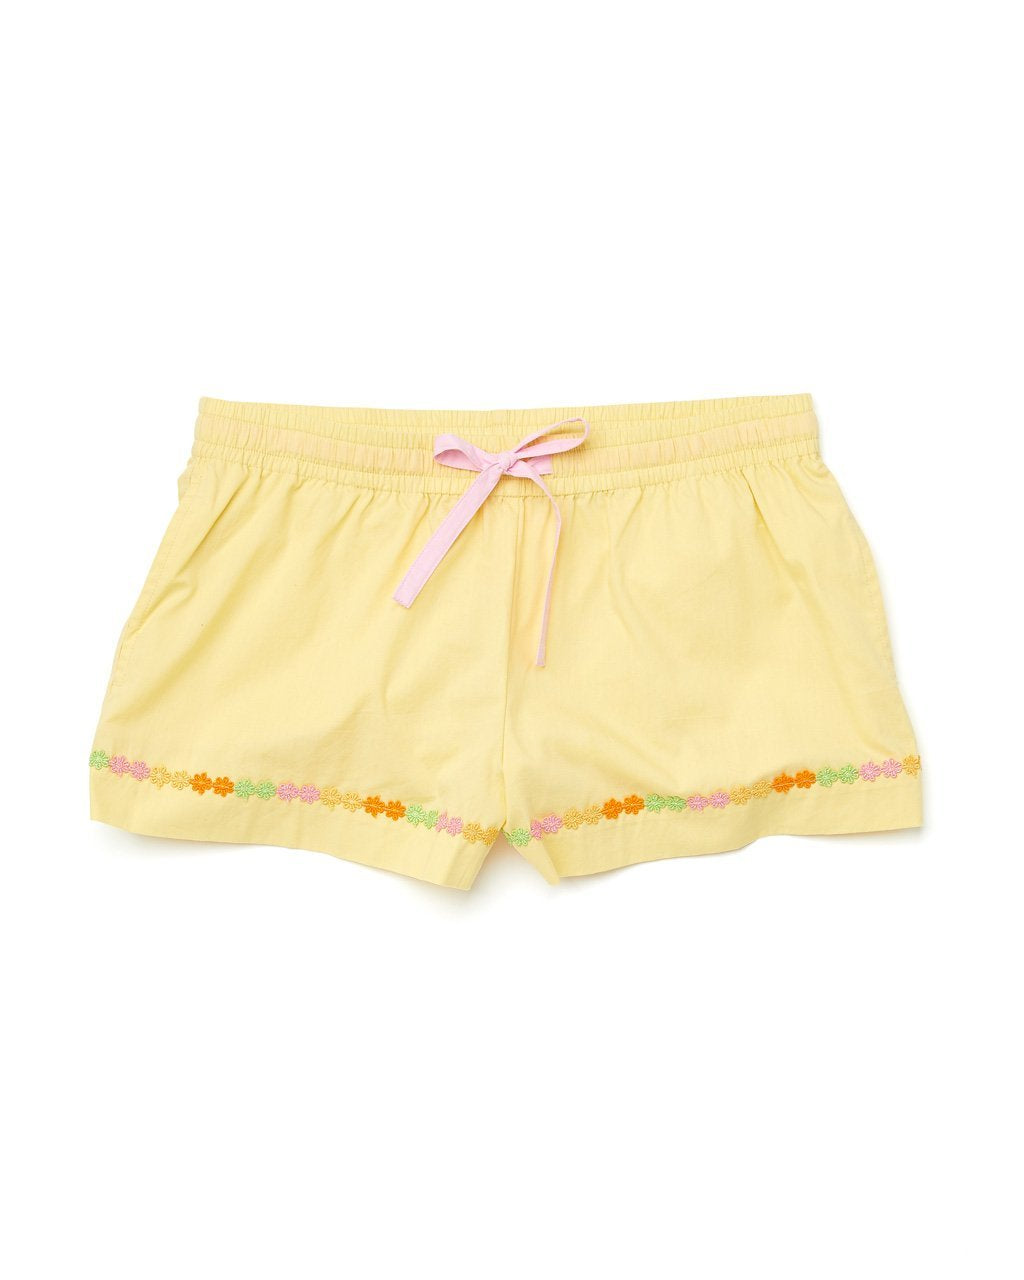 light yellow leisure shorts with a pink draw ribbon and a daisy applique trim at the bottom